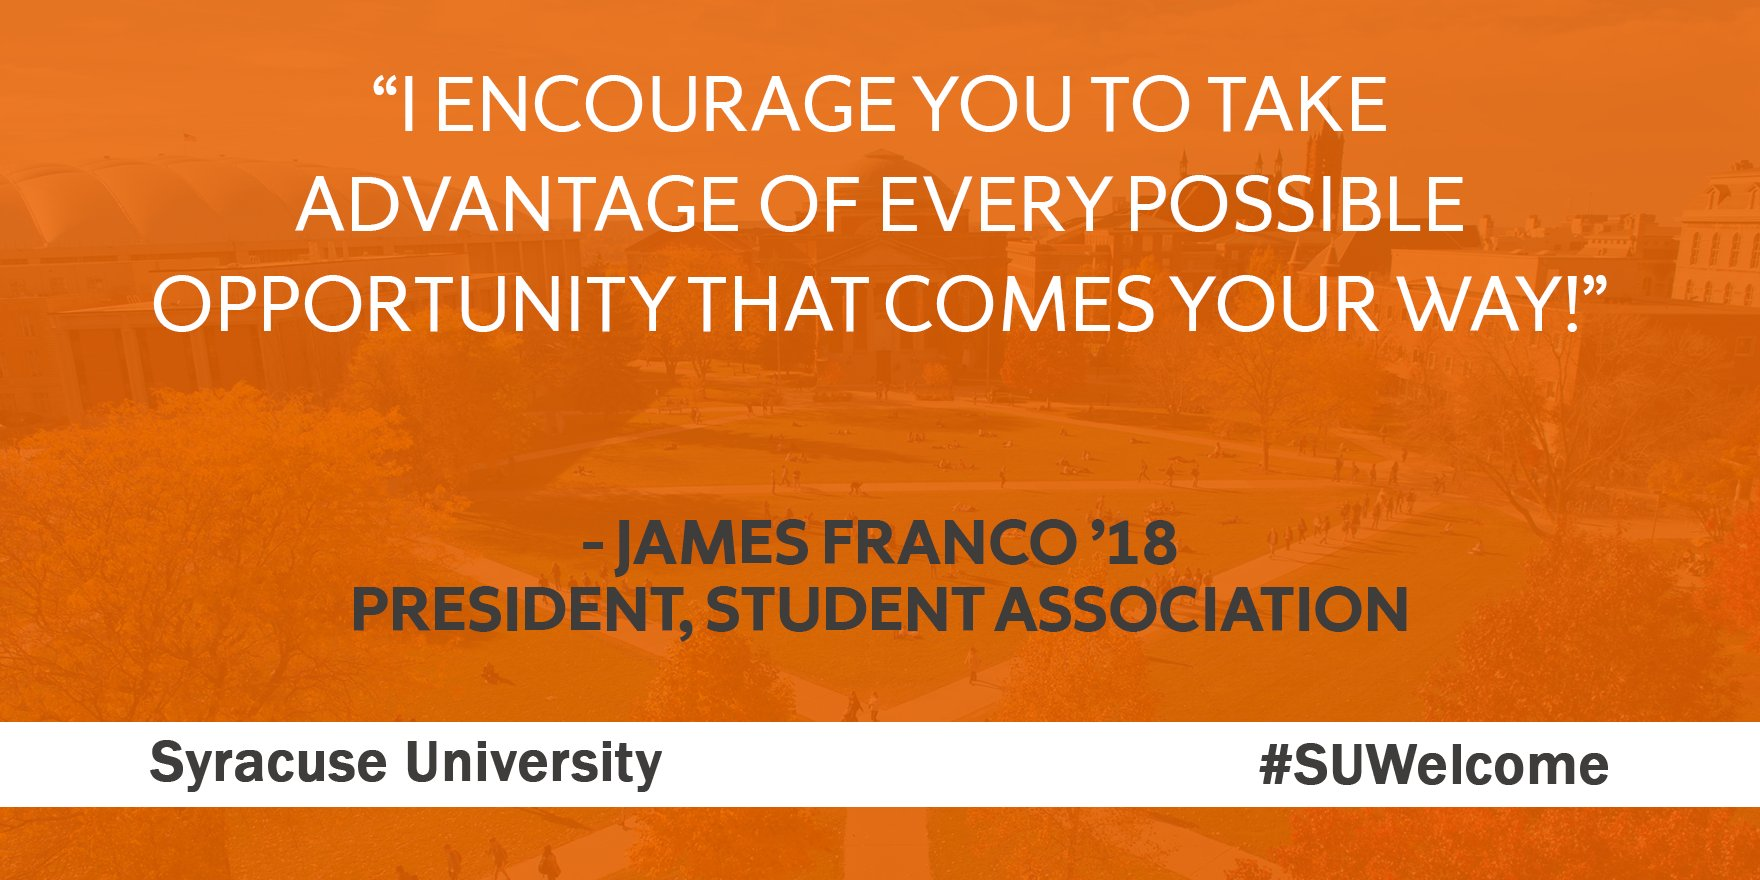 """""""You are now part of an amazing group of SU students, faculty, staff & alumni!"""" - James Franco '18, President of @SAatSU #SUWelcome https://t.co/NmDfyjL1N8"""